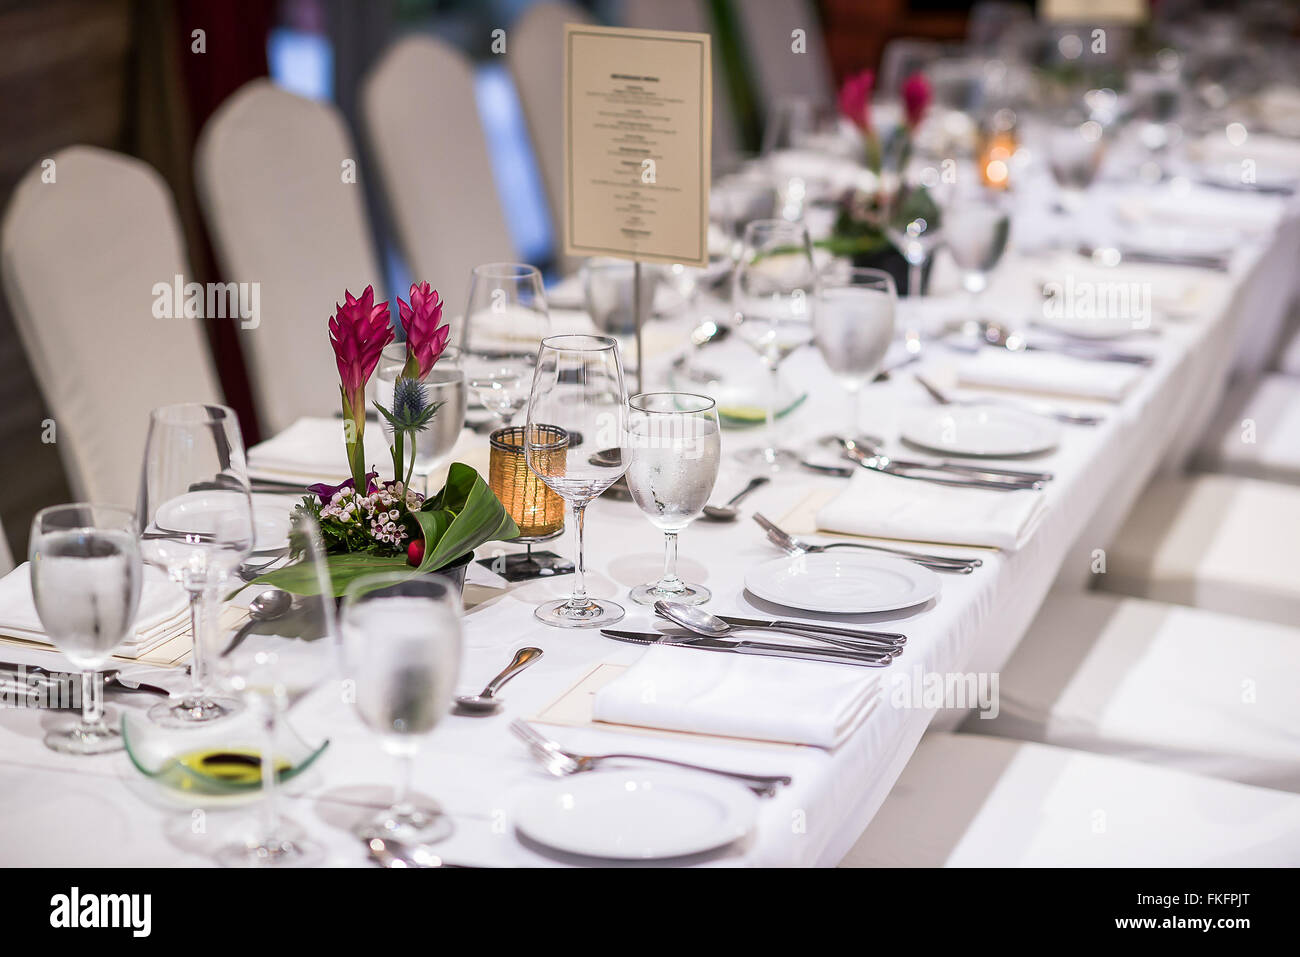 Luxurious table set up with plates and cutlery for dinner reception. & Luxurious table set up with plates and cutlery for dinner reception ...